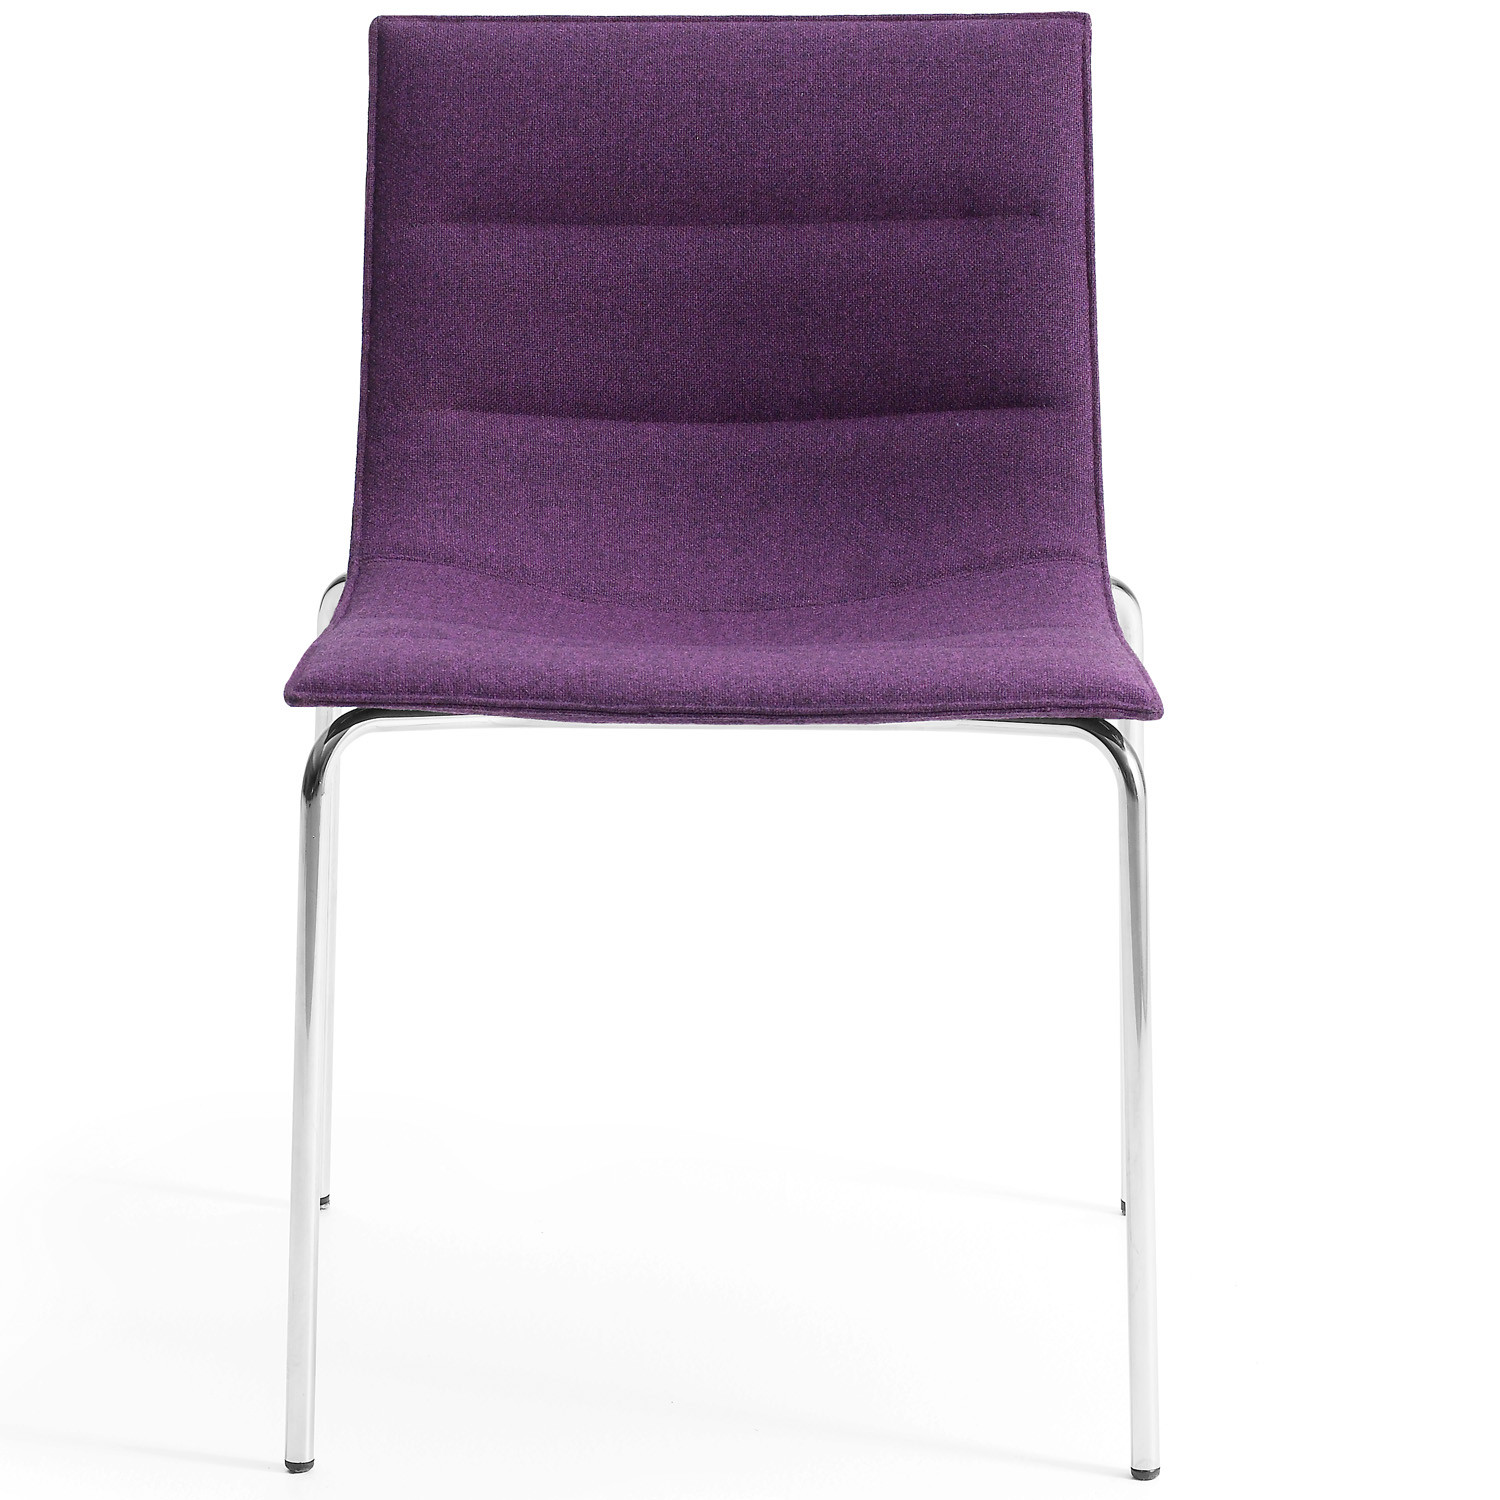 Bond Office Xtra Light Chair